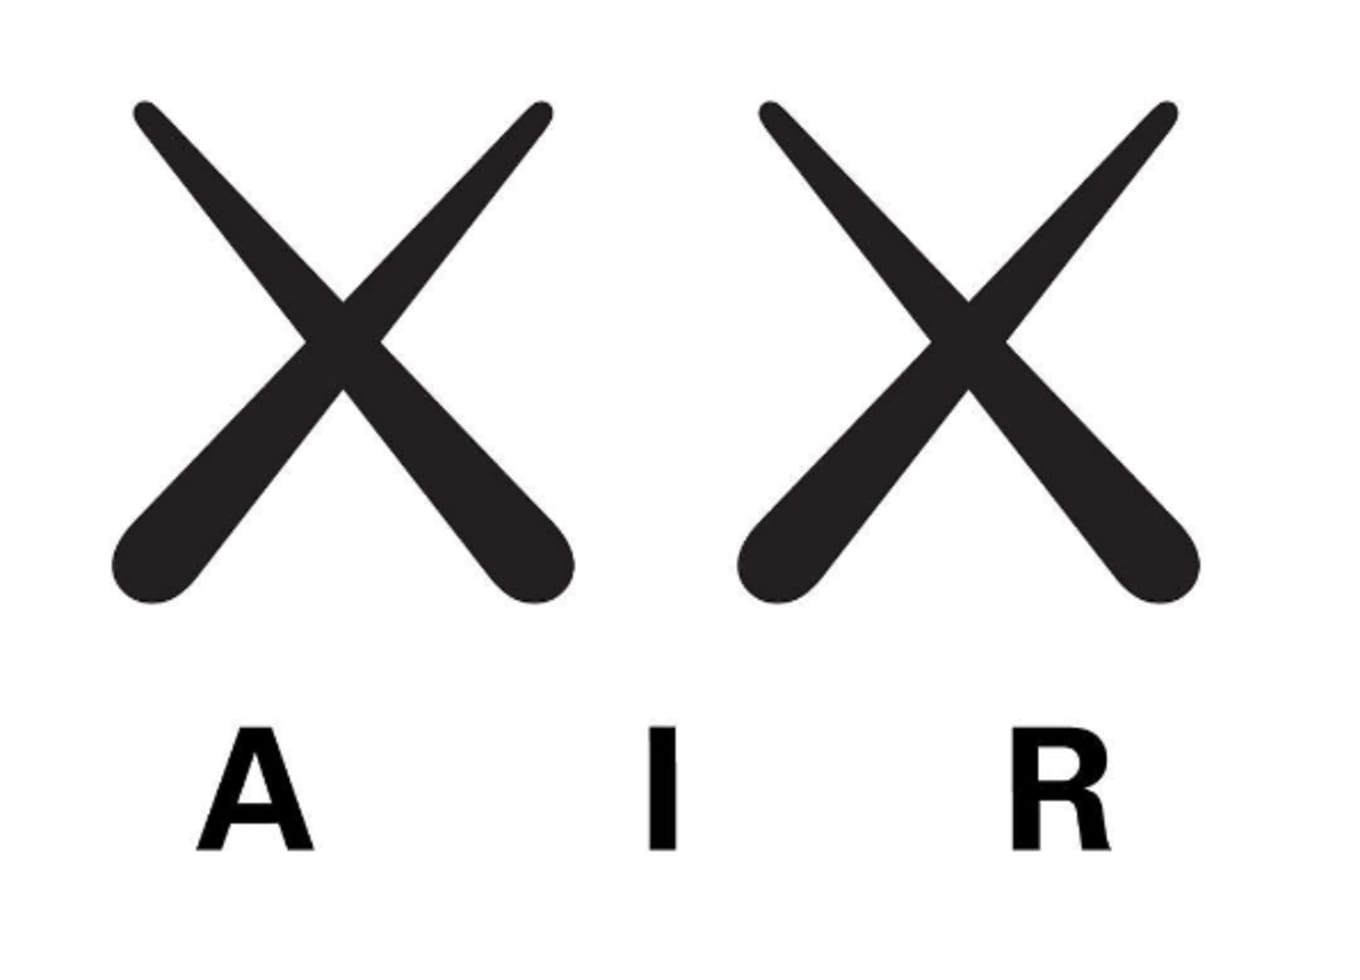 newest sneakers for cheap release info on Kaws x Air Jordan 4 Release | Sole Collector